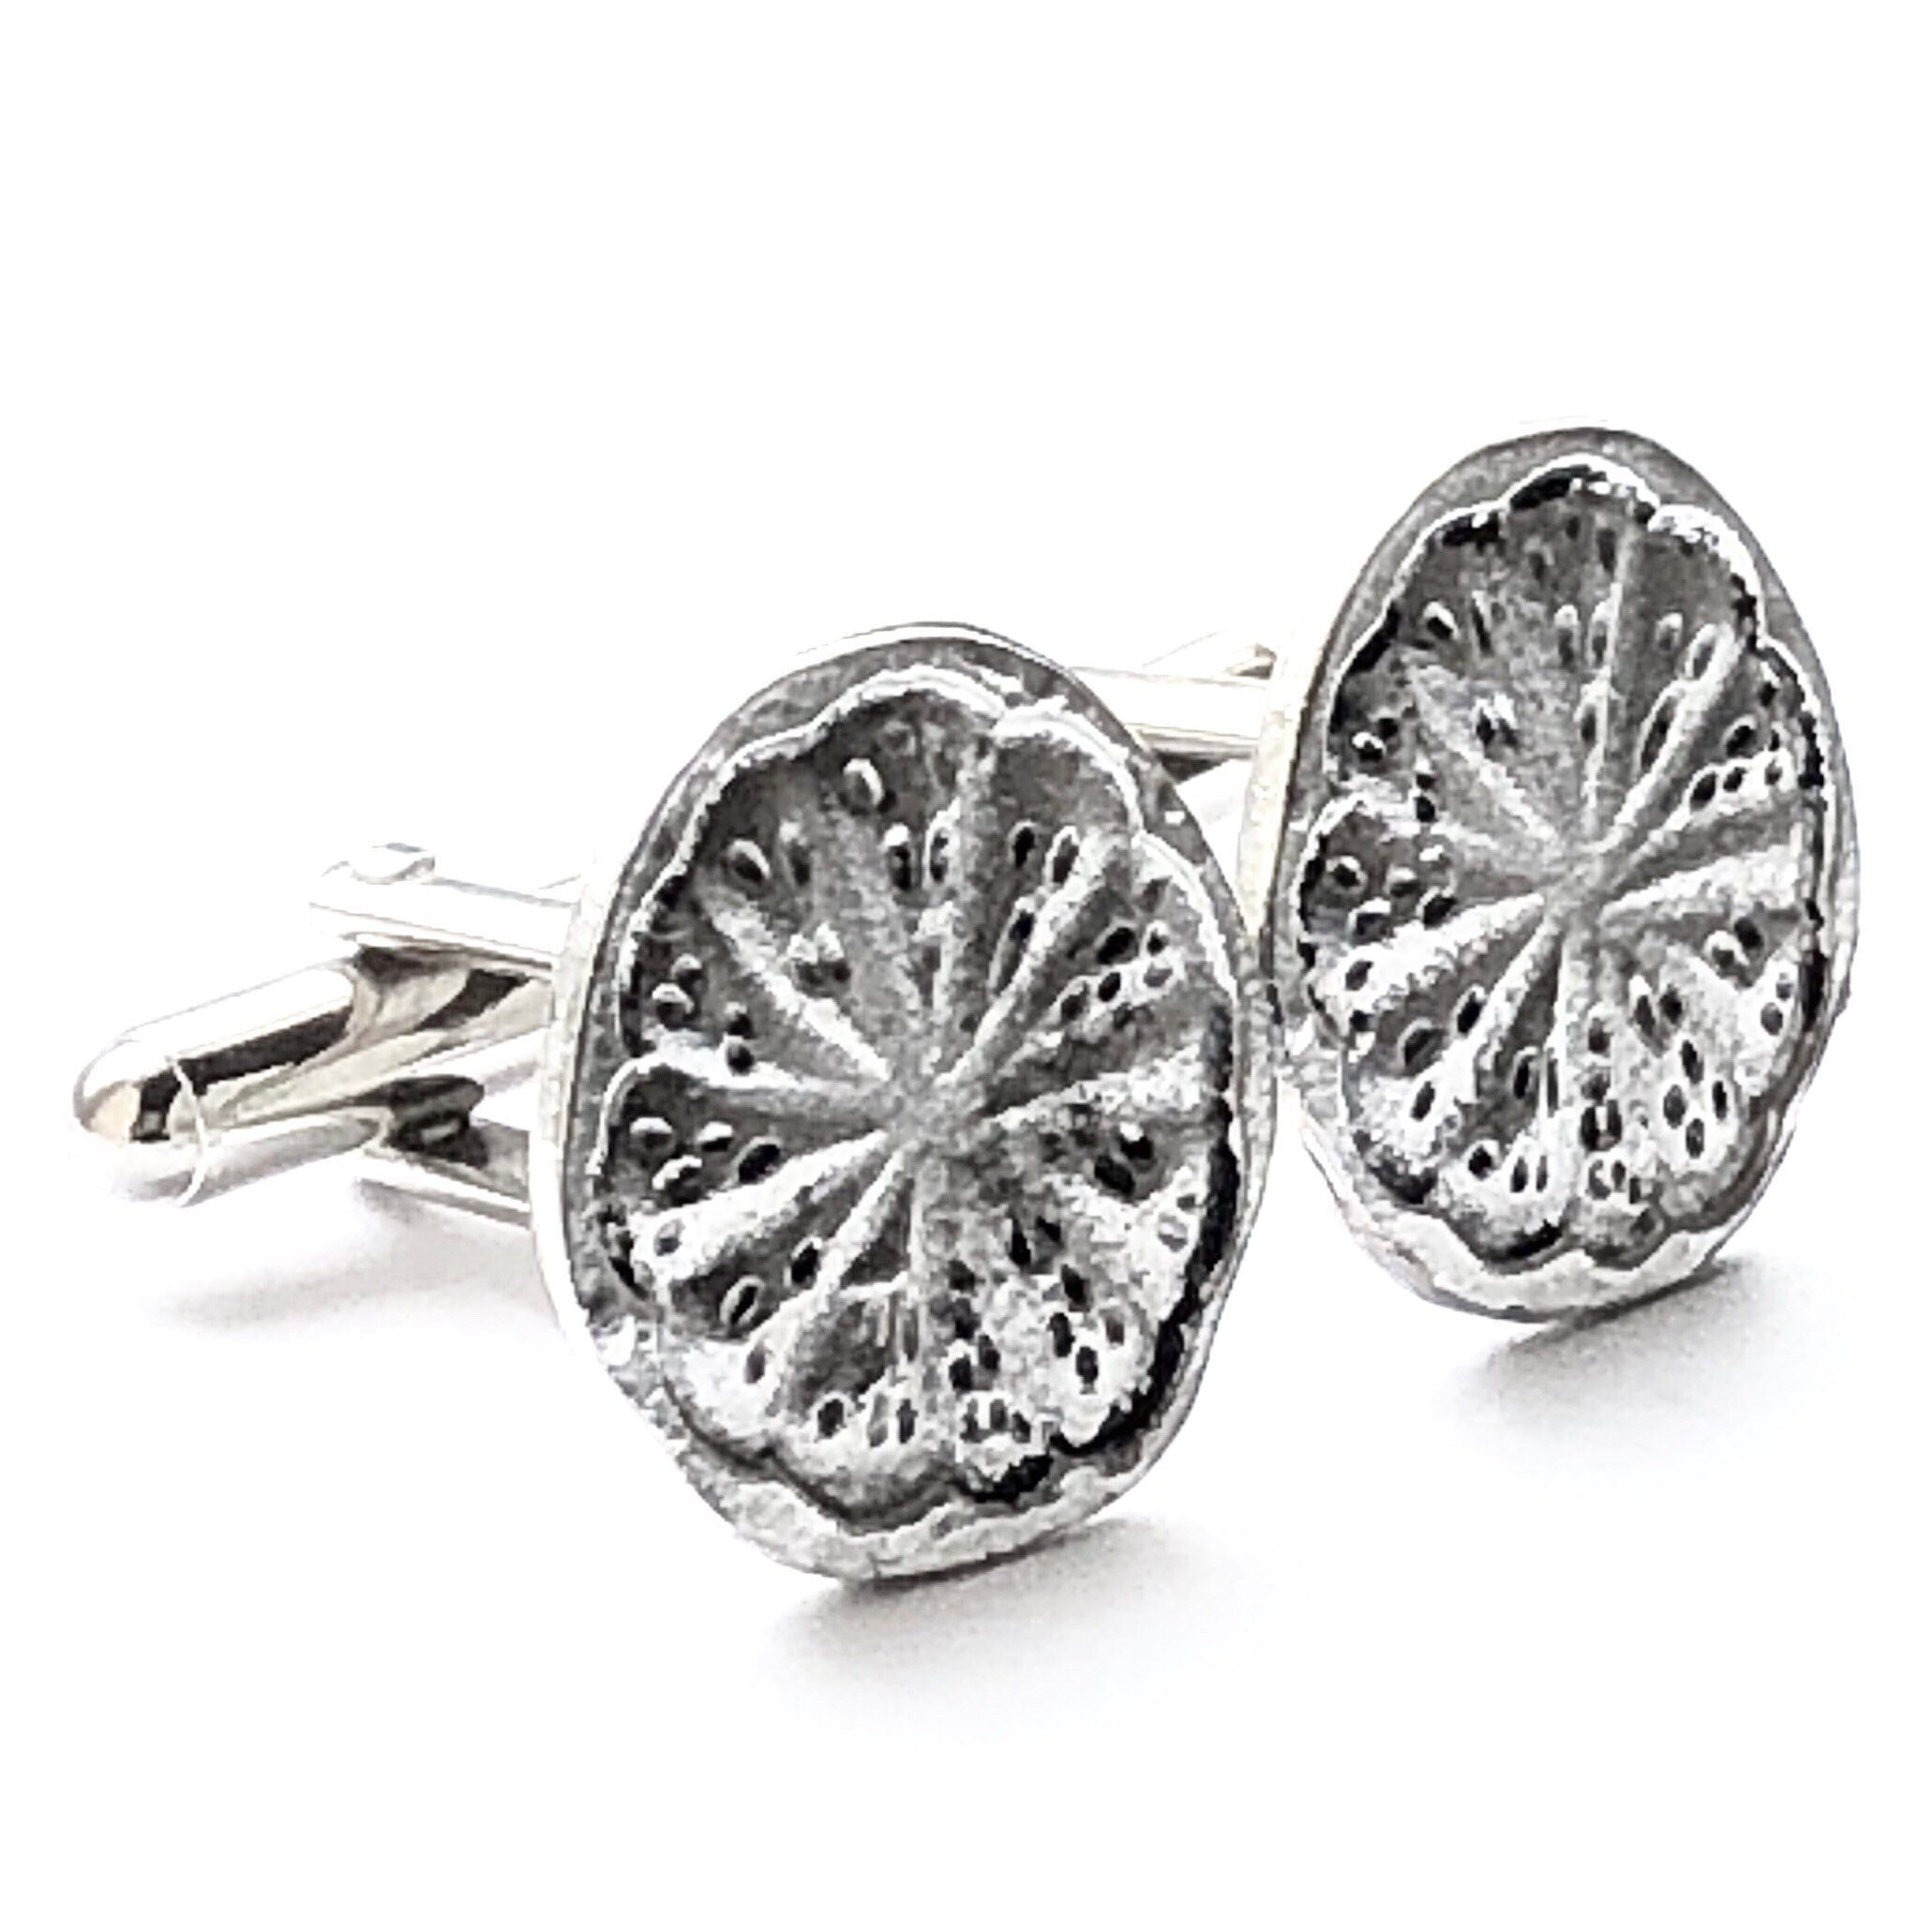 Silver Tree of Life Cufflinks & Tie Tack Mens Handcrafted